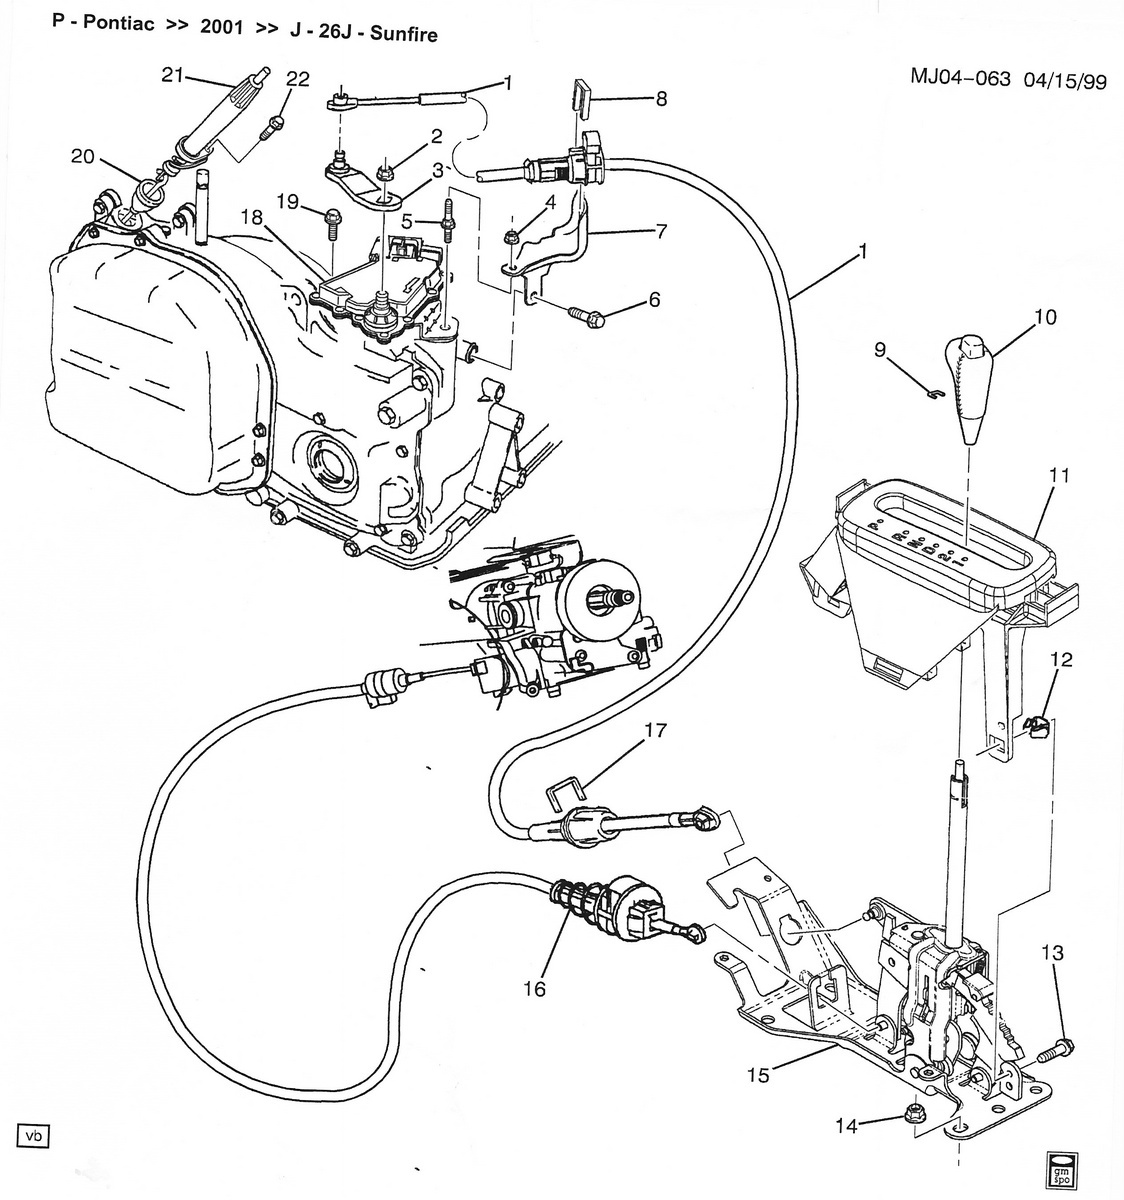 Chevy Trailblazer Wiring Diagram For Wires From